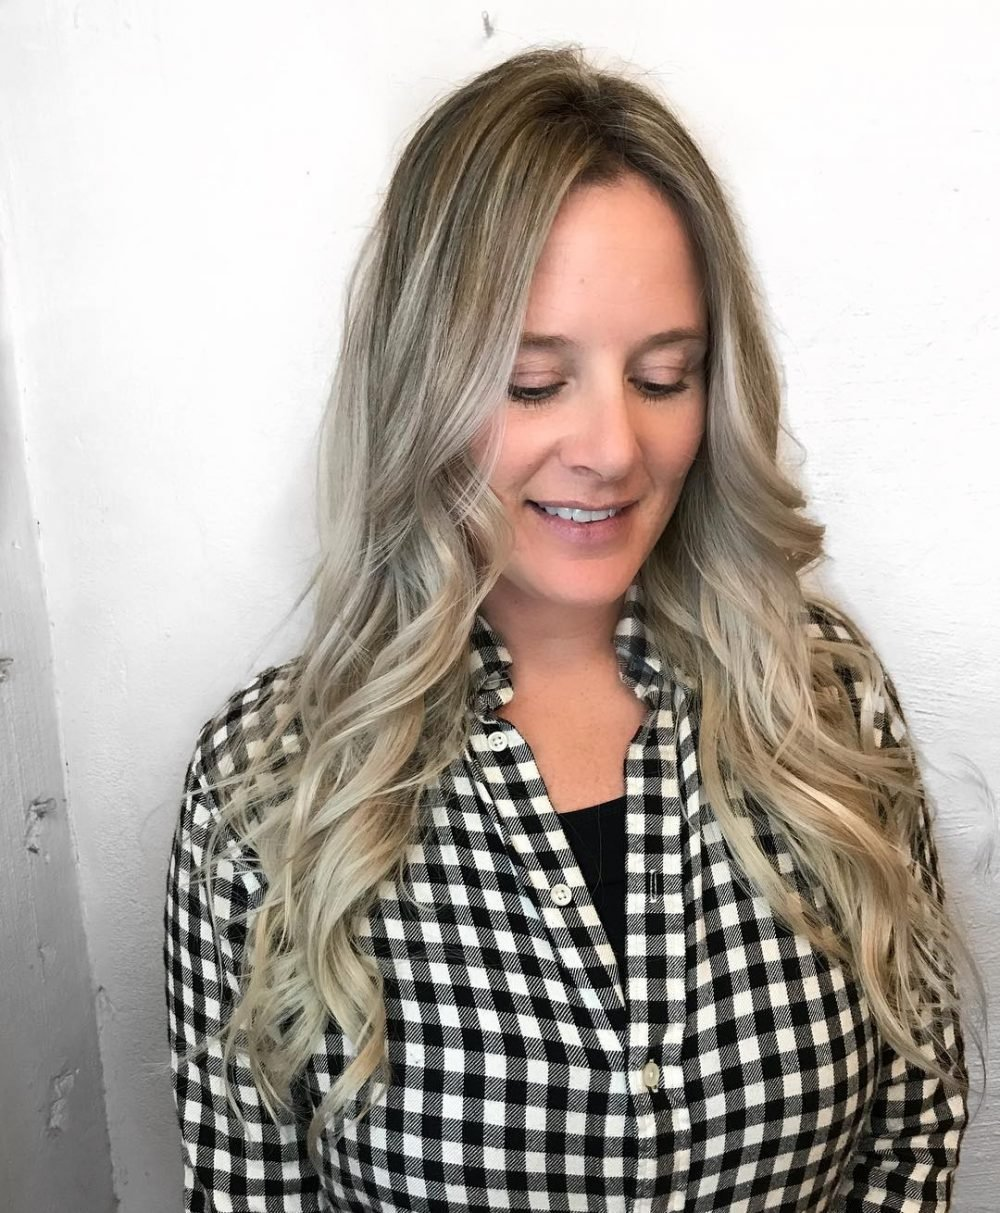 The Best 18 Most Flattering Long Hairstyles For Round Faces 2019 Pictures